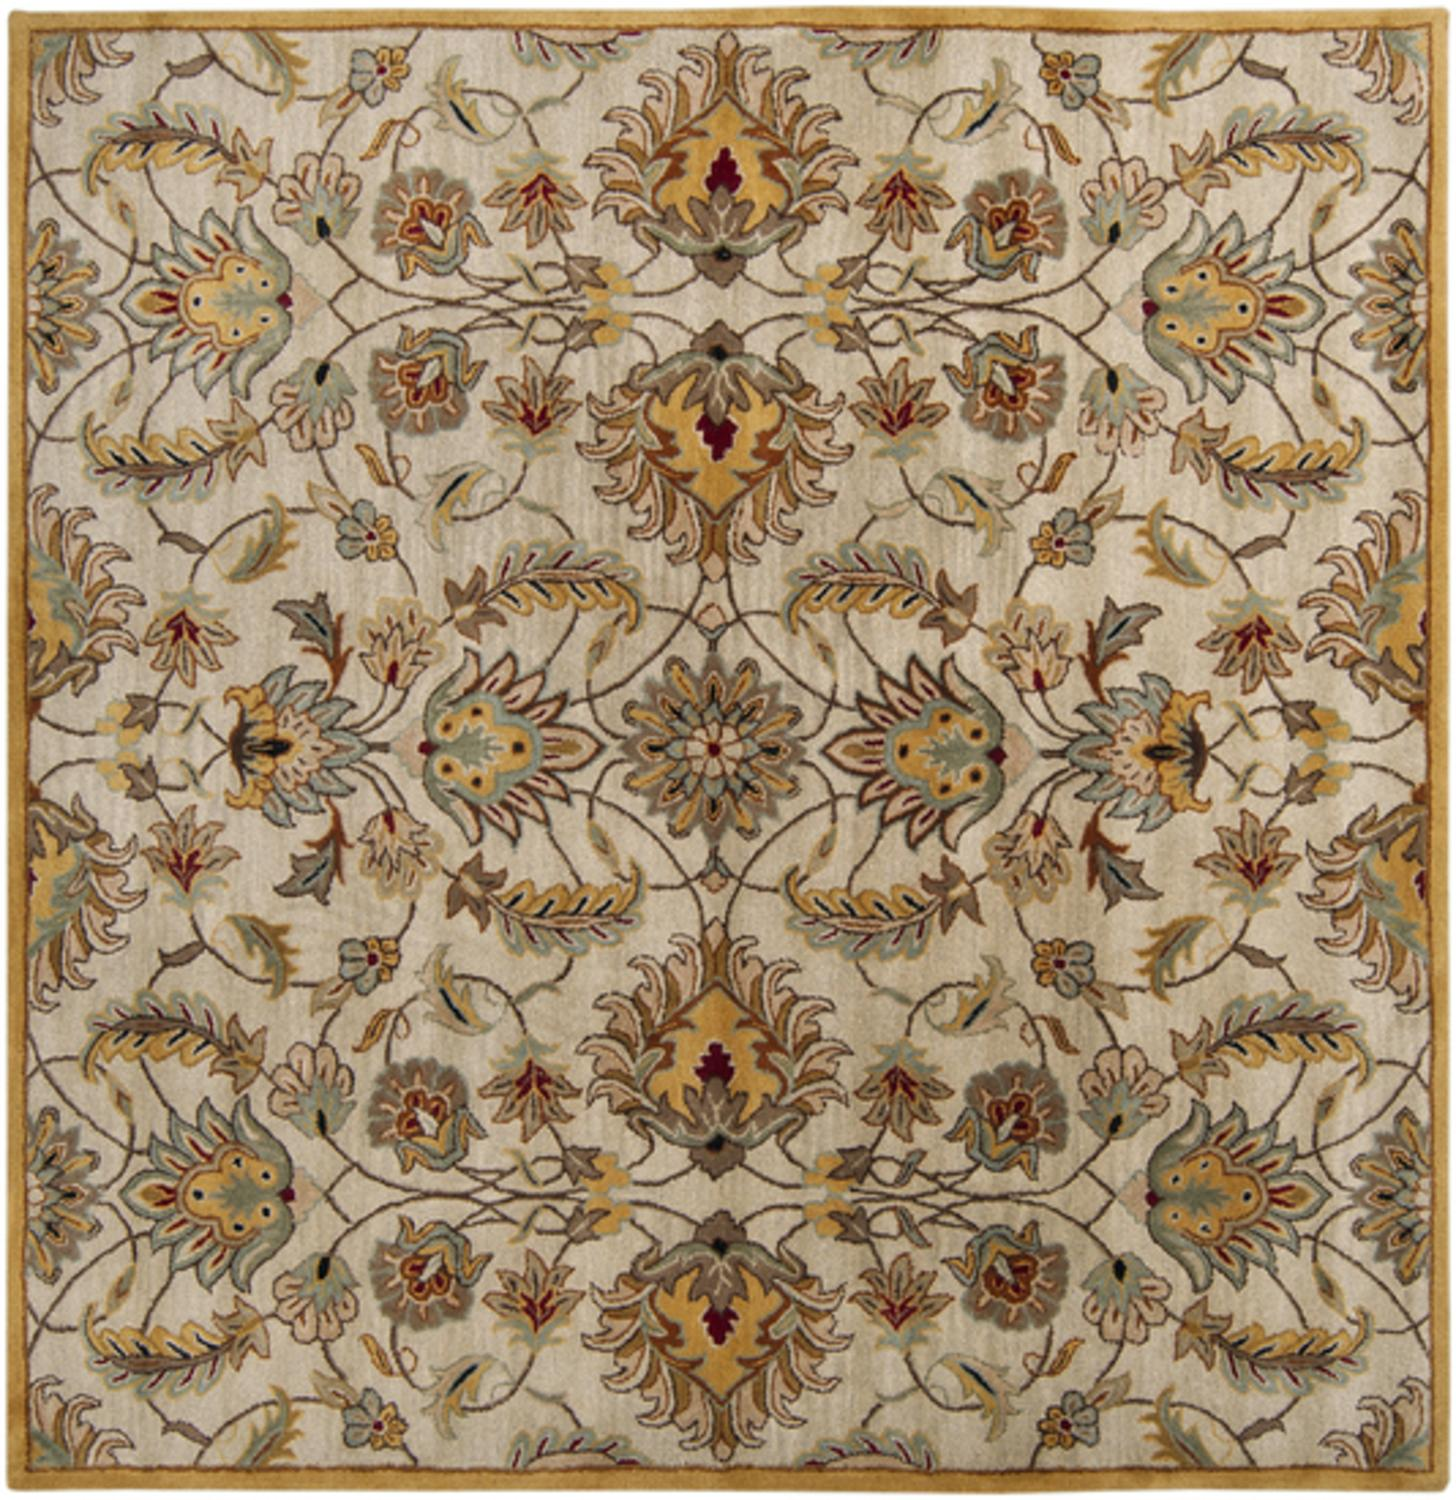 9.75' x 9.75' Alexandria Caramel Tan and Silver Gray Wool Area Throw Rug